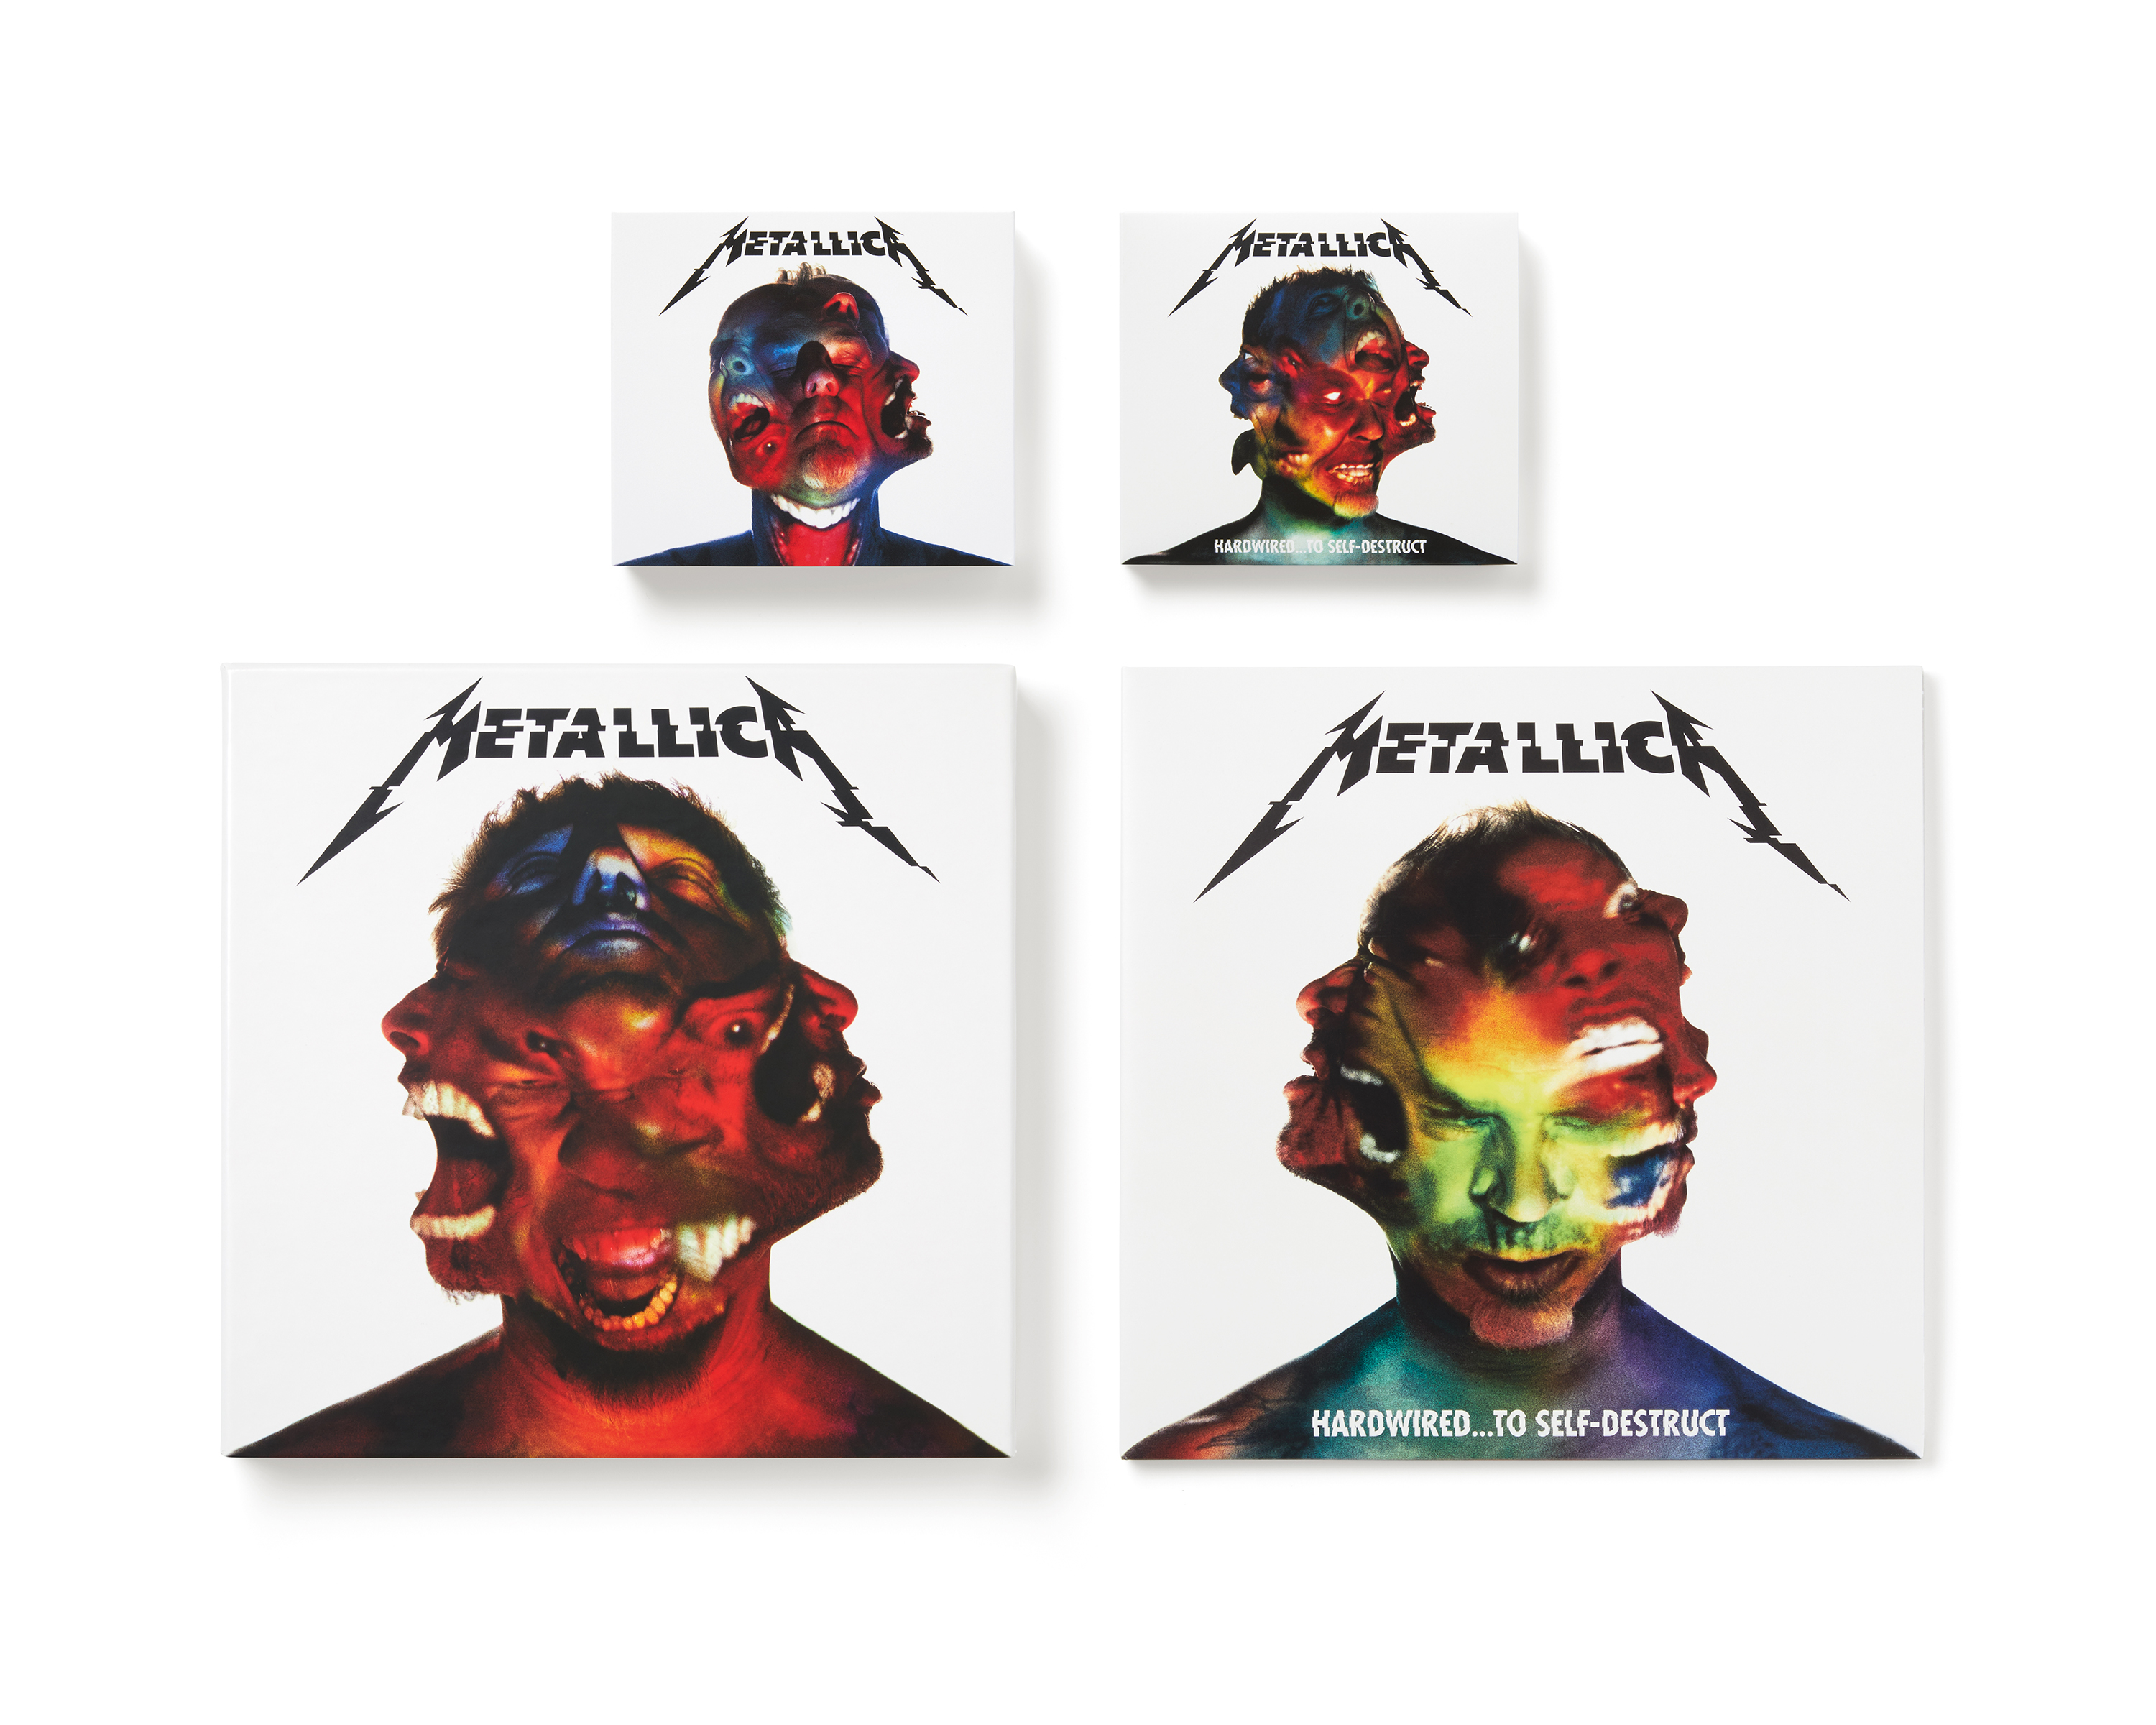 Metallica Hardwired... to Self-Destruct album design  Thumbnail